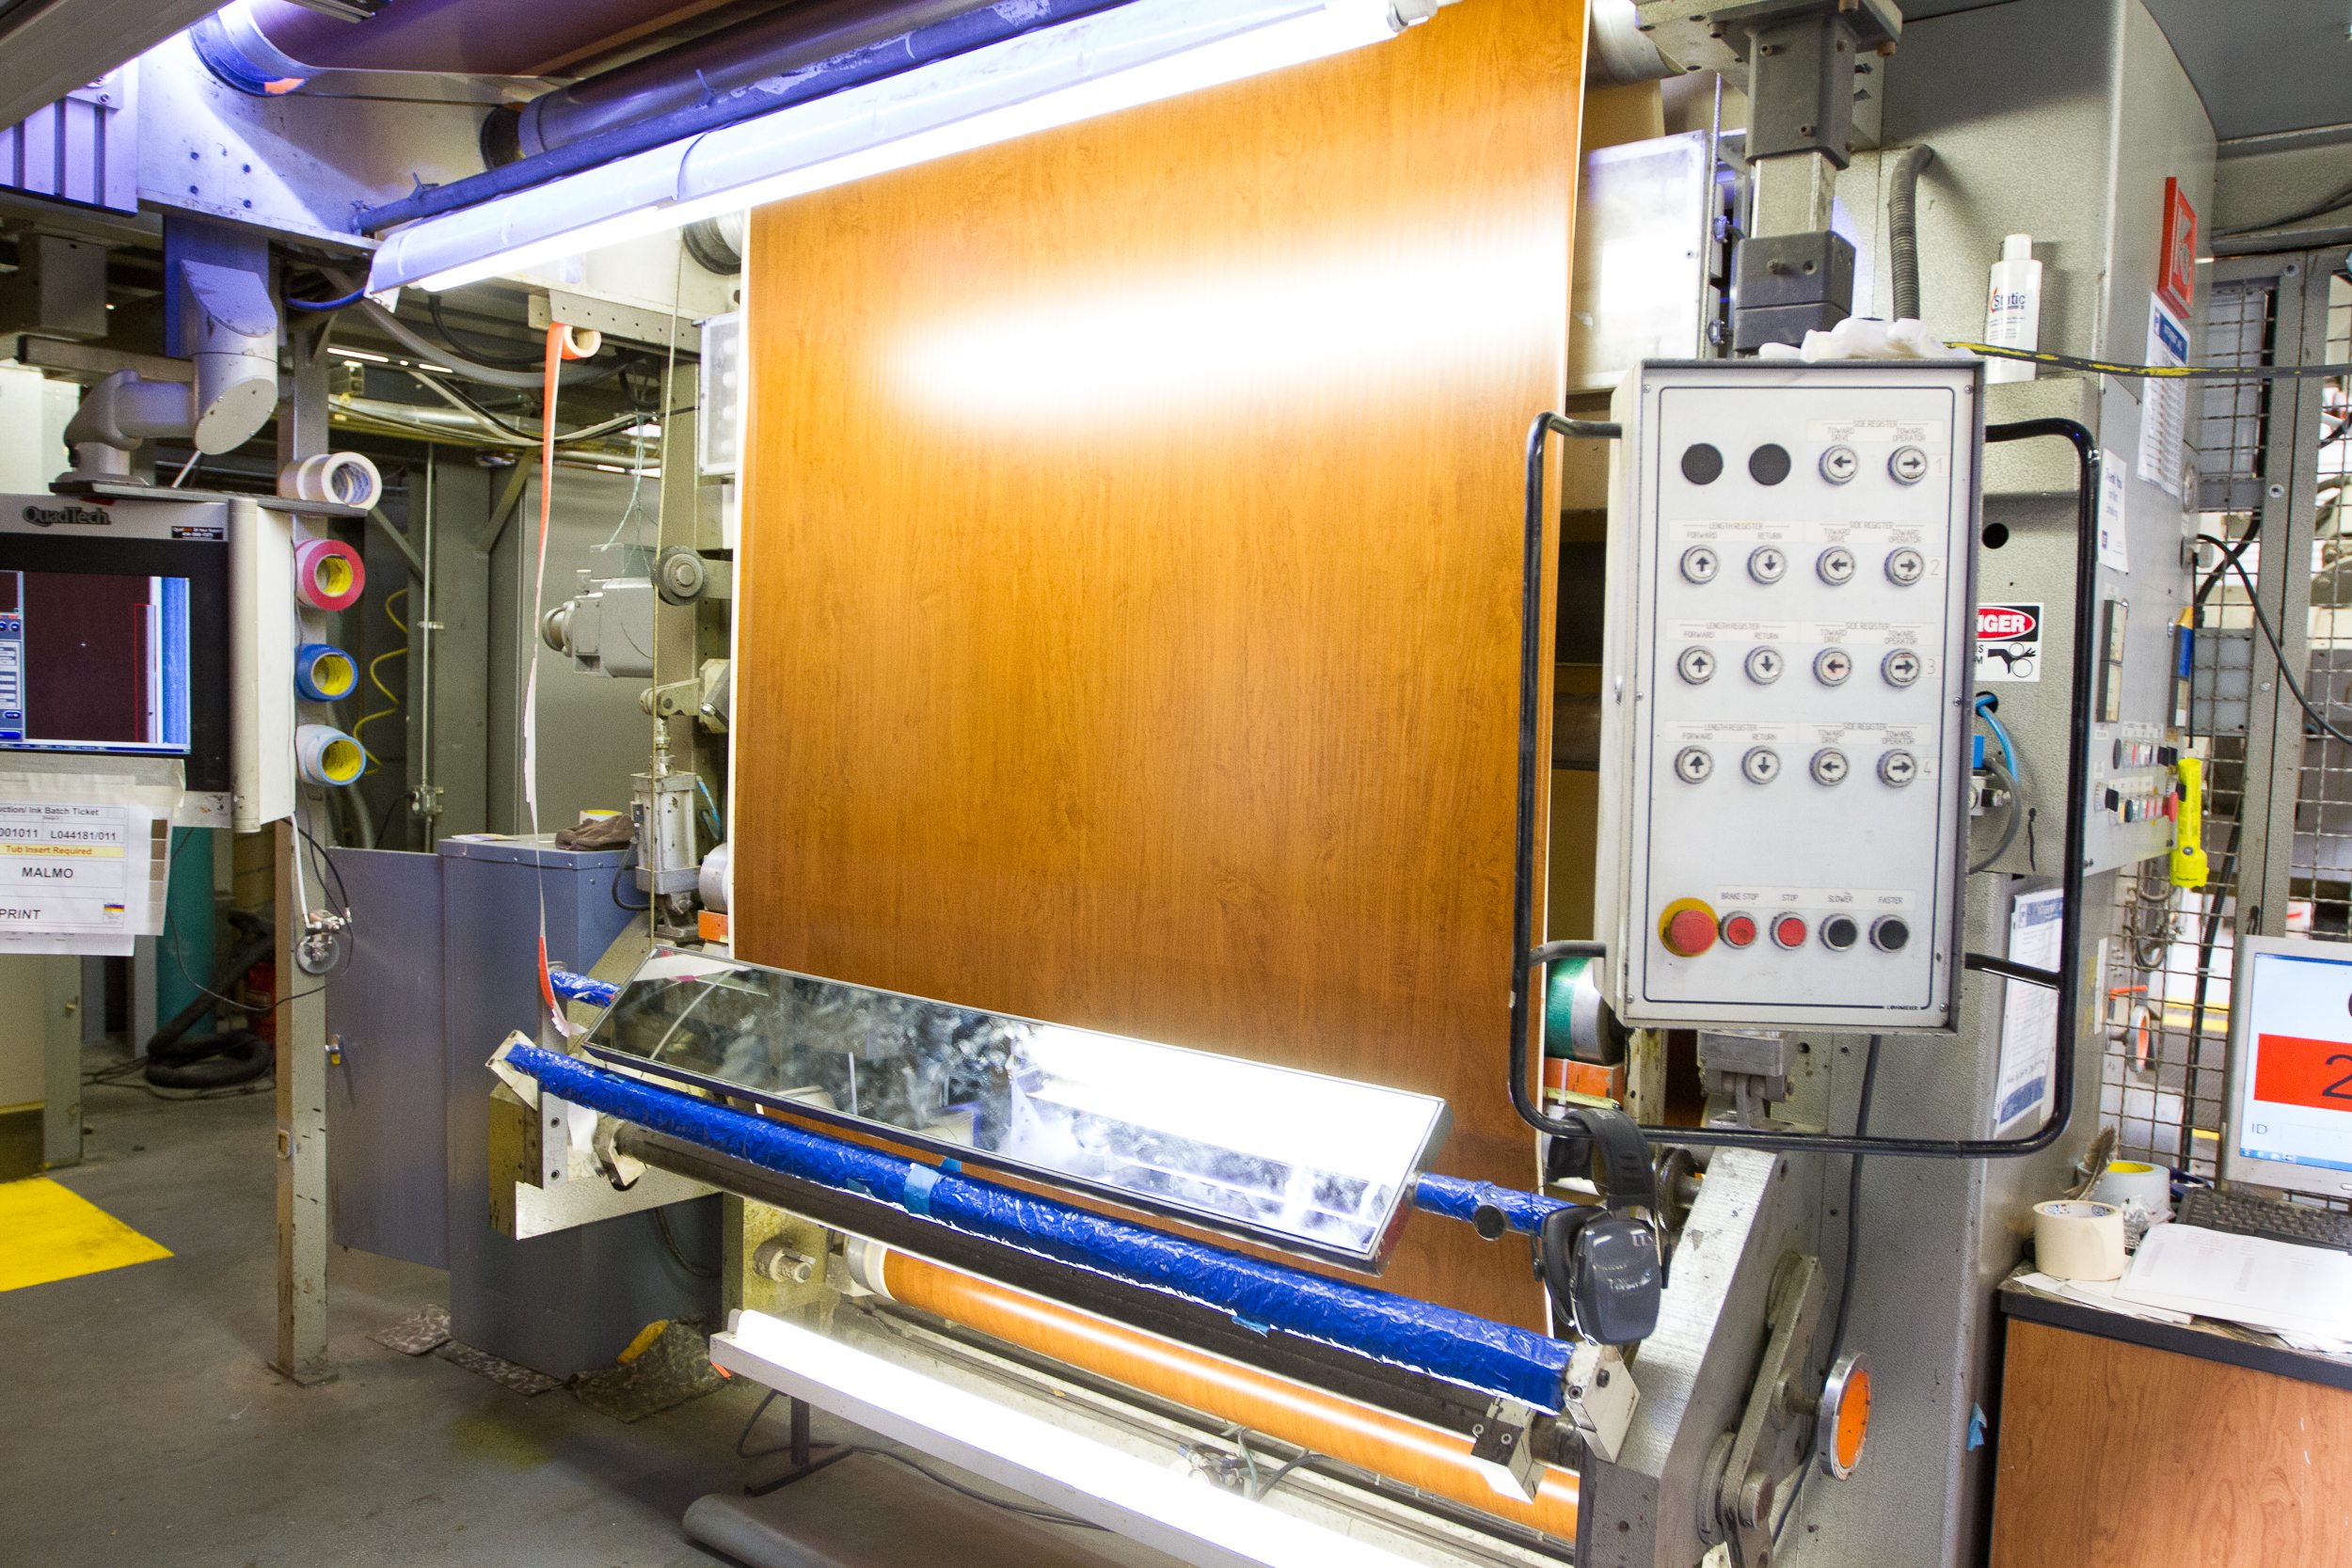 - Quality control and inspection stations throughout the process ensure the color and fidelity are consistent from the beginning to the end of a production run, and from order to order, year in and year out.